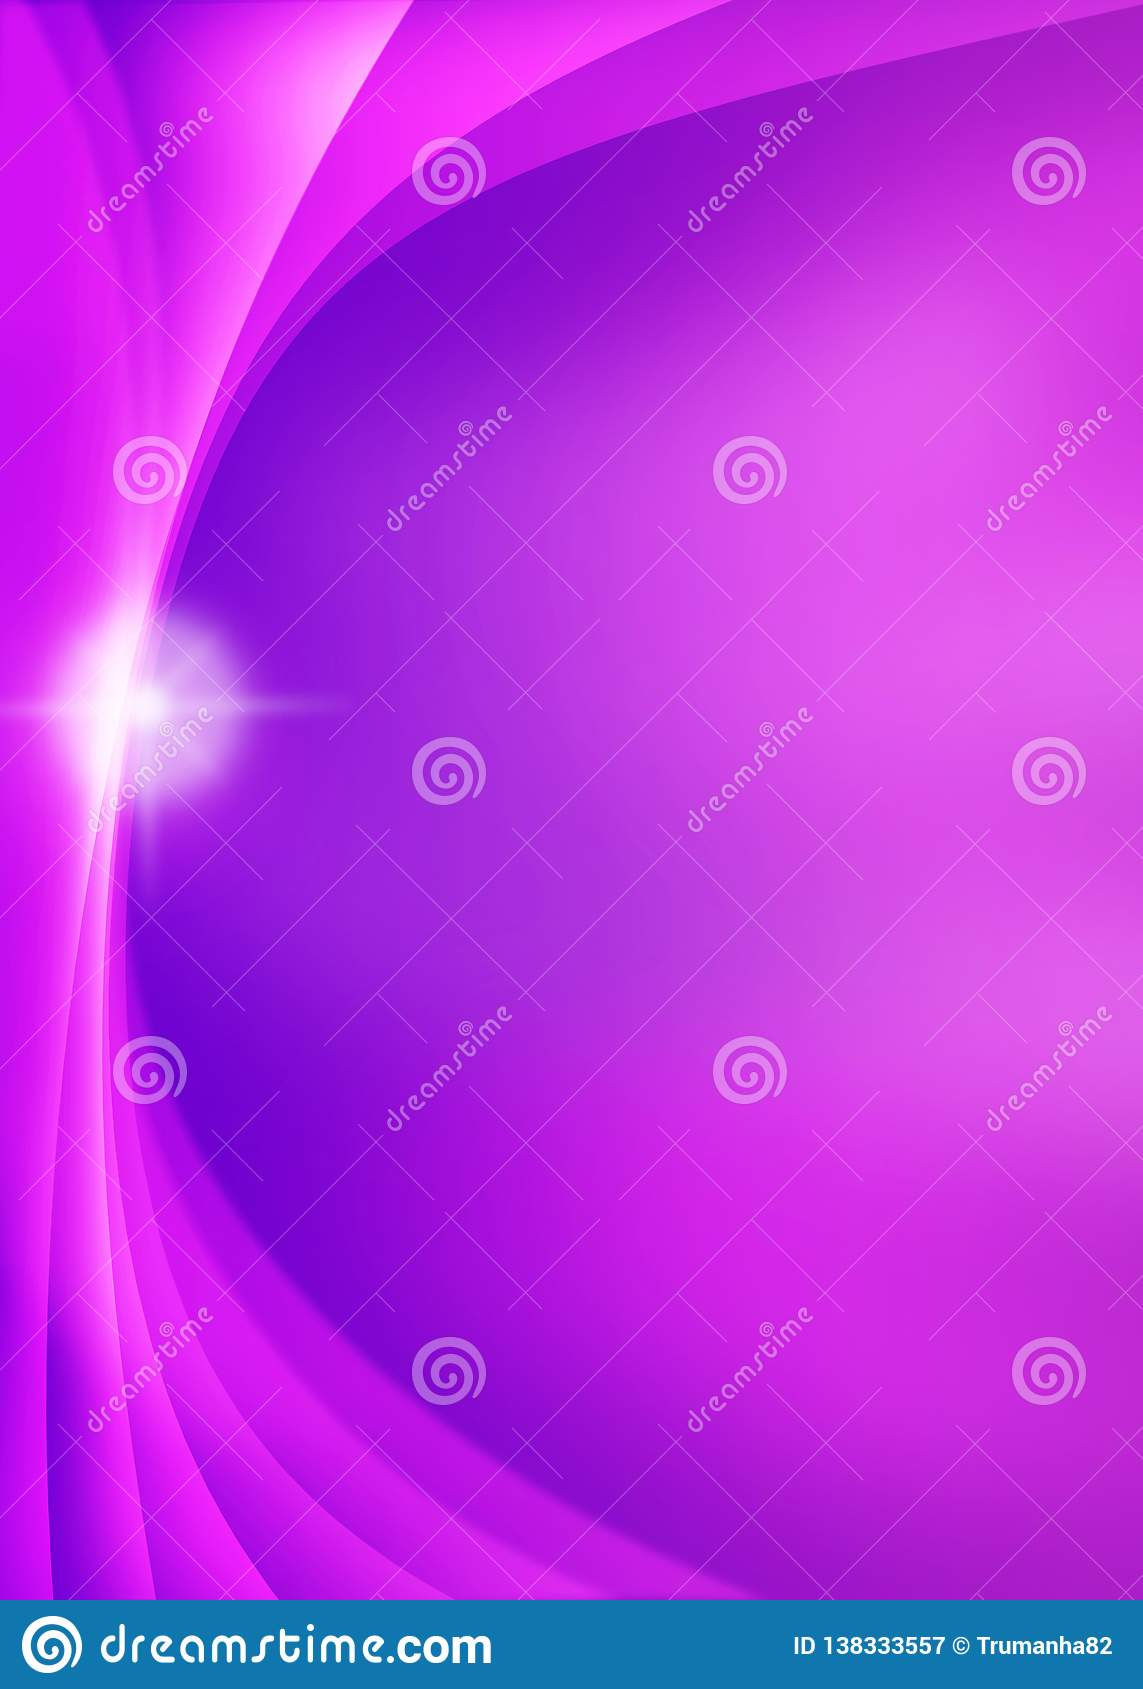 Shiny Sparkle and Curves in Blurred Violet and Purple Background